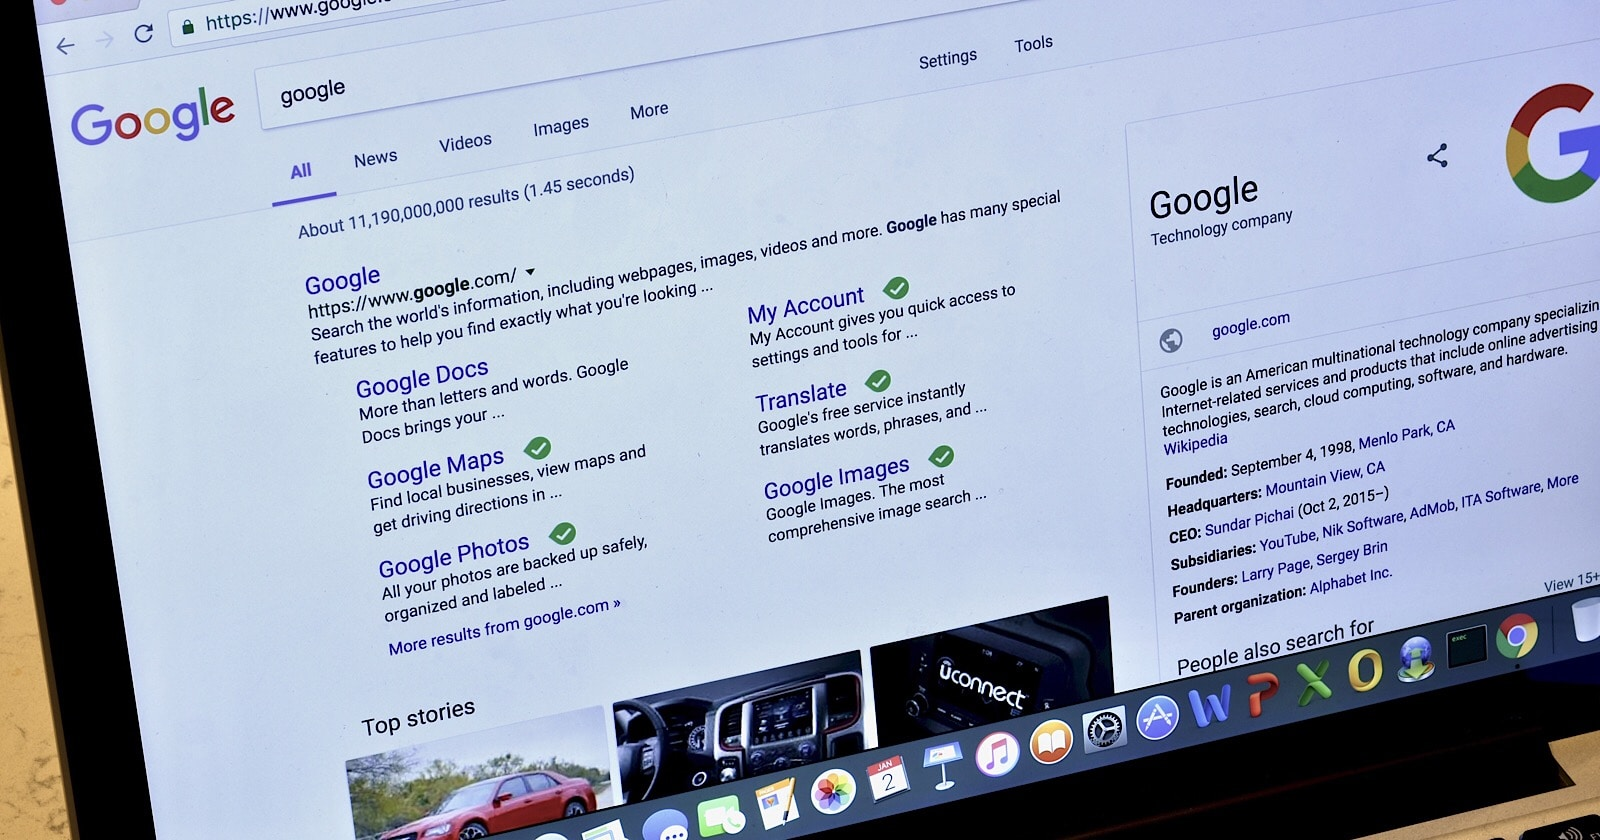 searchenginejournal.com - Google Explains Why Rich Snippets Are Not Showing Up in Search Results